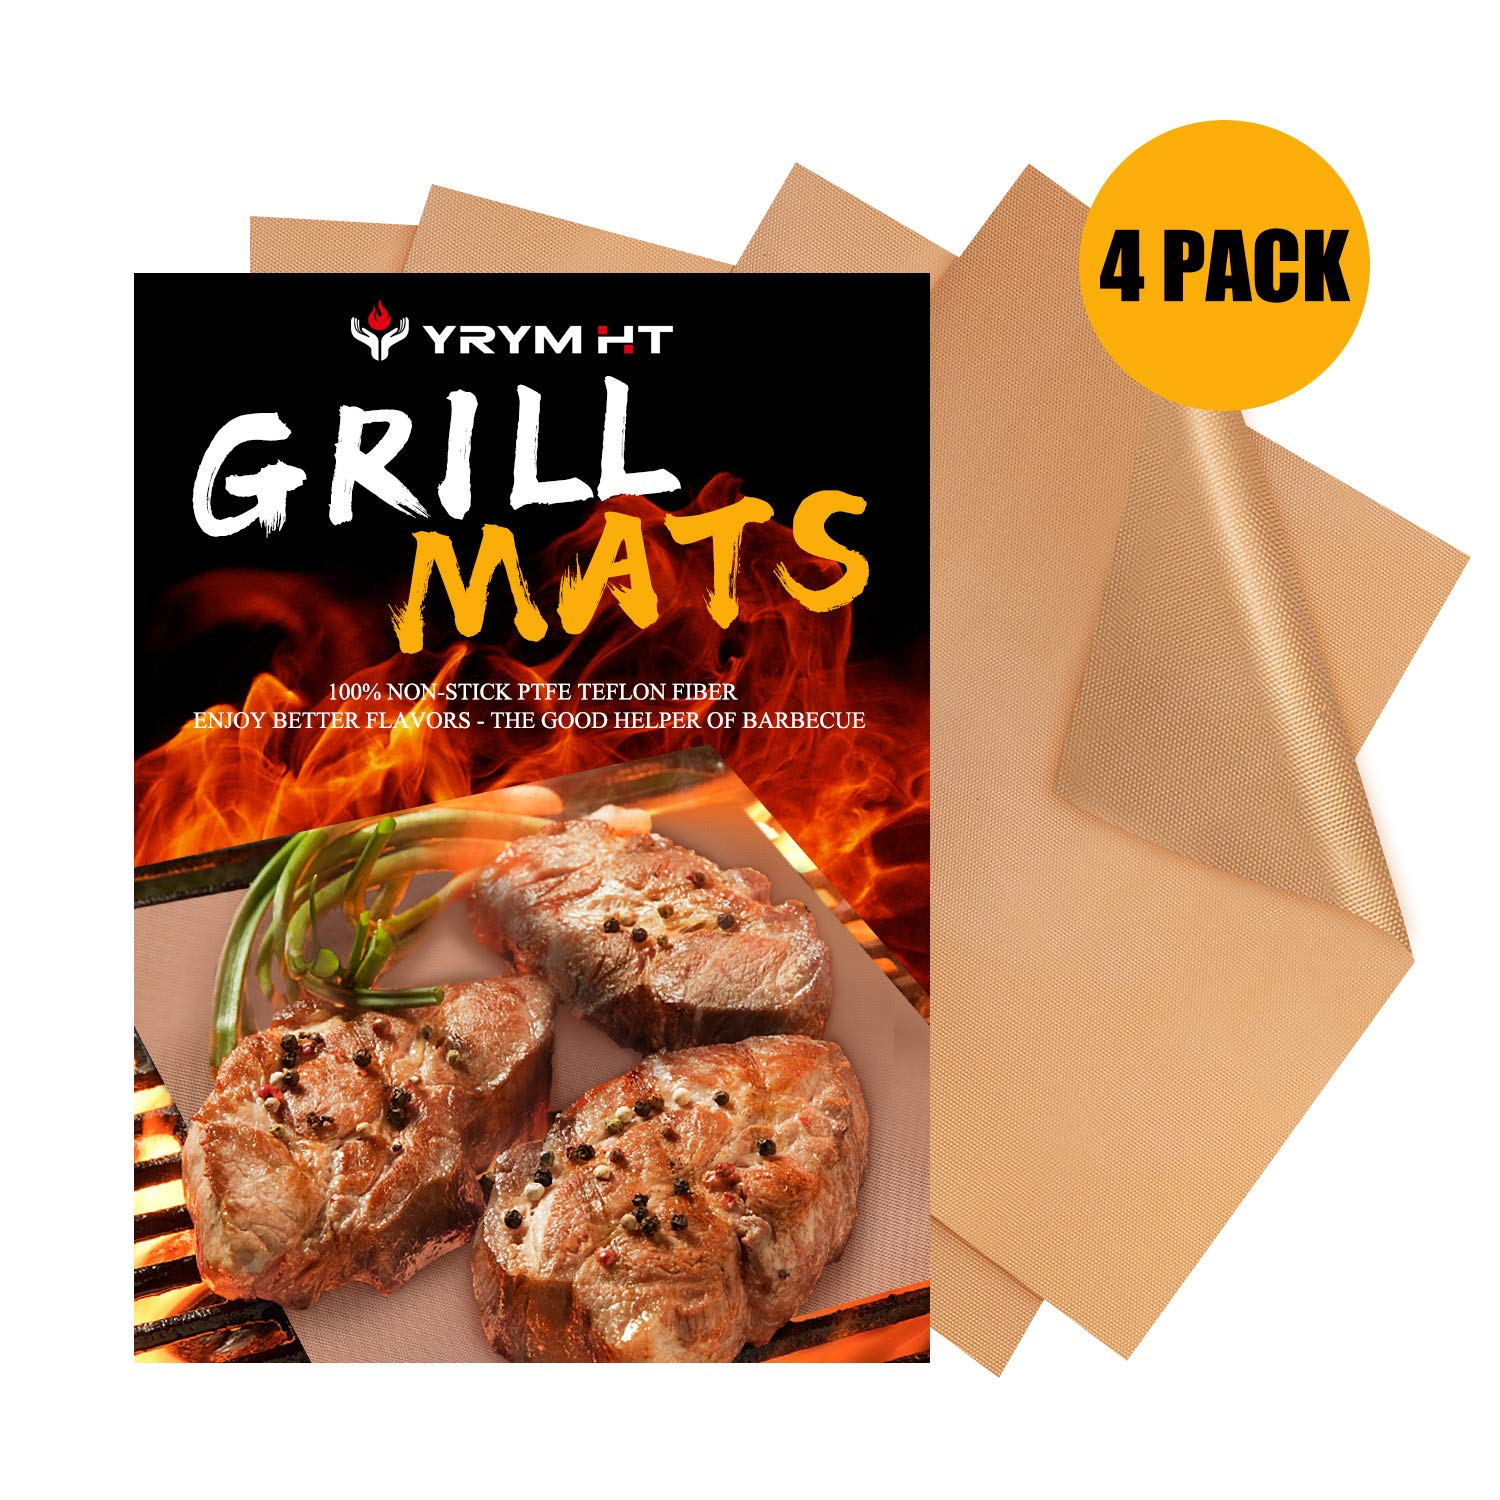 YRYM HT Copper Grill Mats -Set of 4 Non Stick Heavy Duty Grill Mats-Reusable and Easy to Clean Barbecue Grilling Mats by YRYM HT